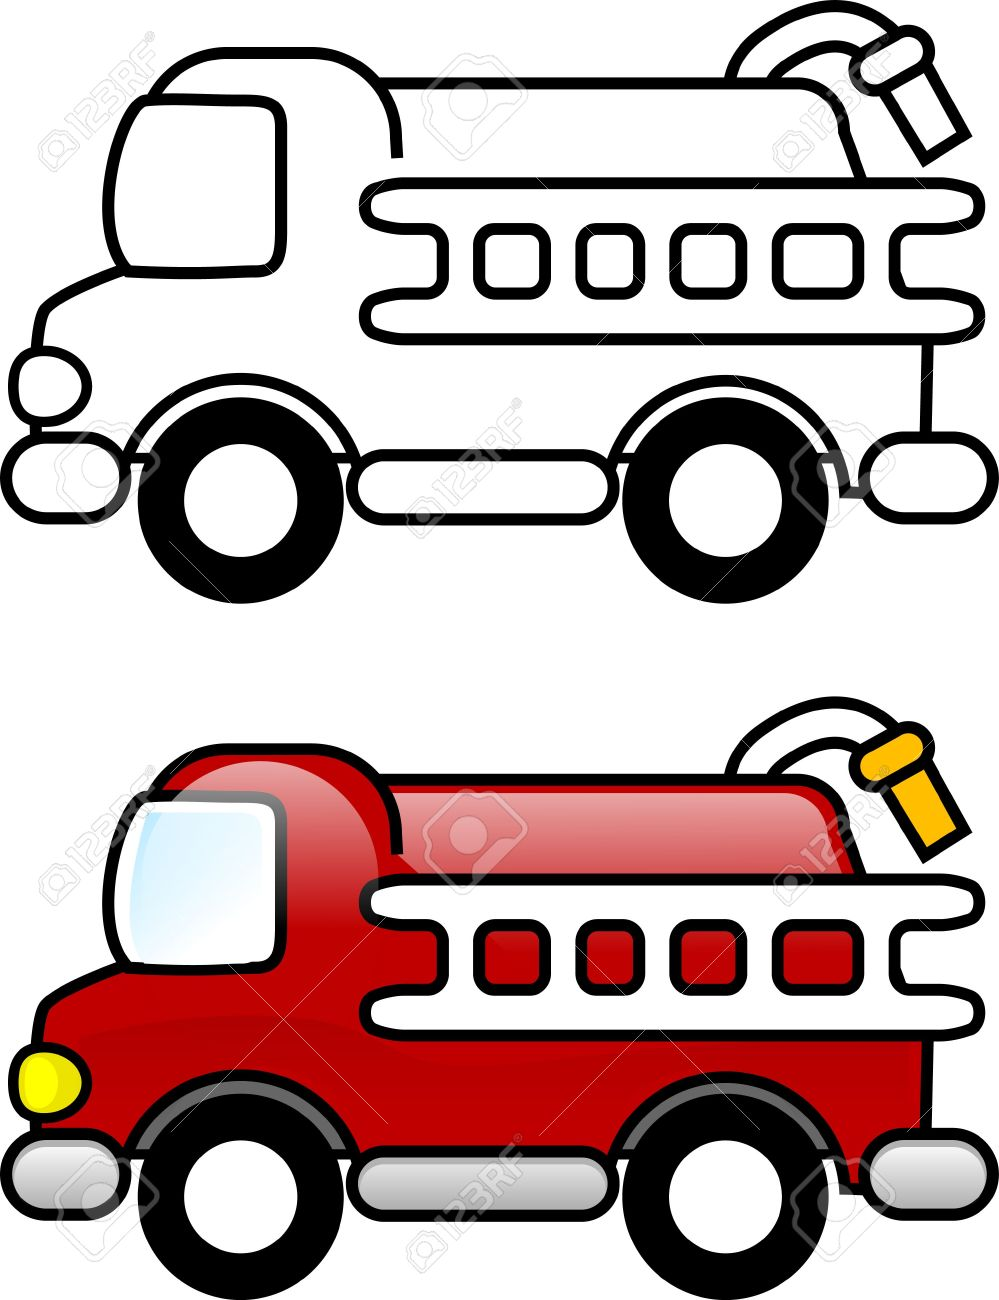 Fire Truck Printable Coloring Page For Children Or You Can Stock